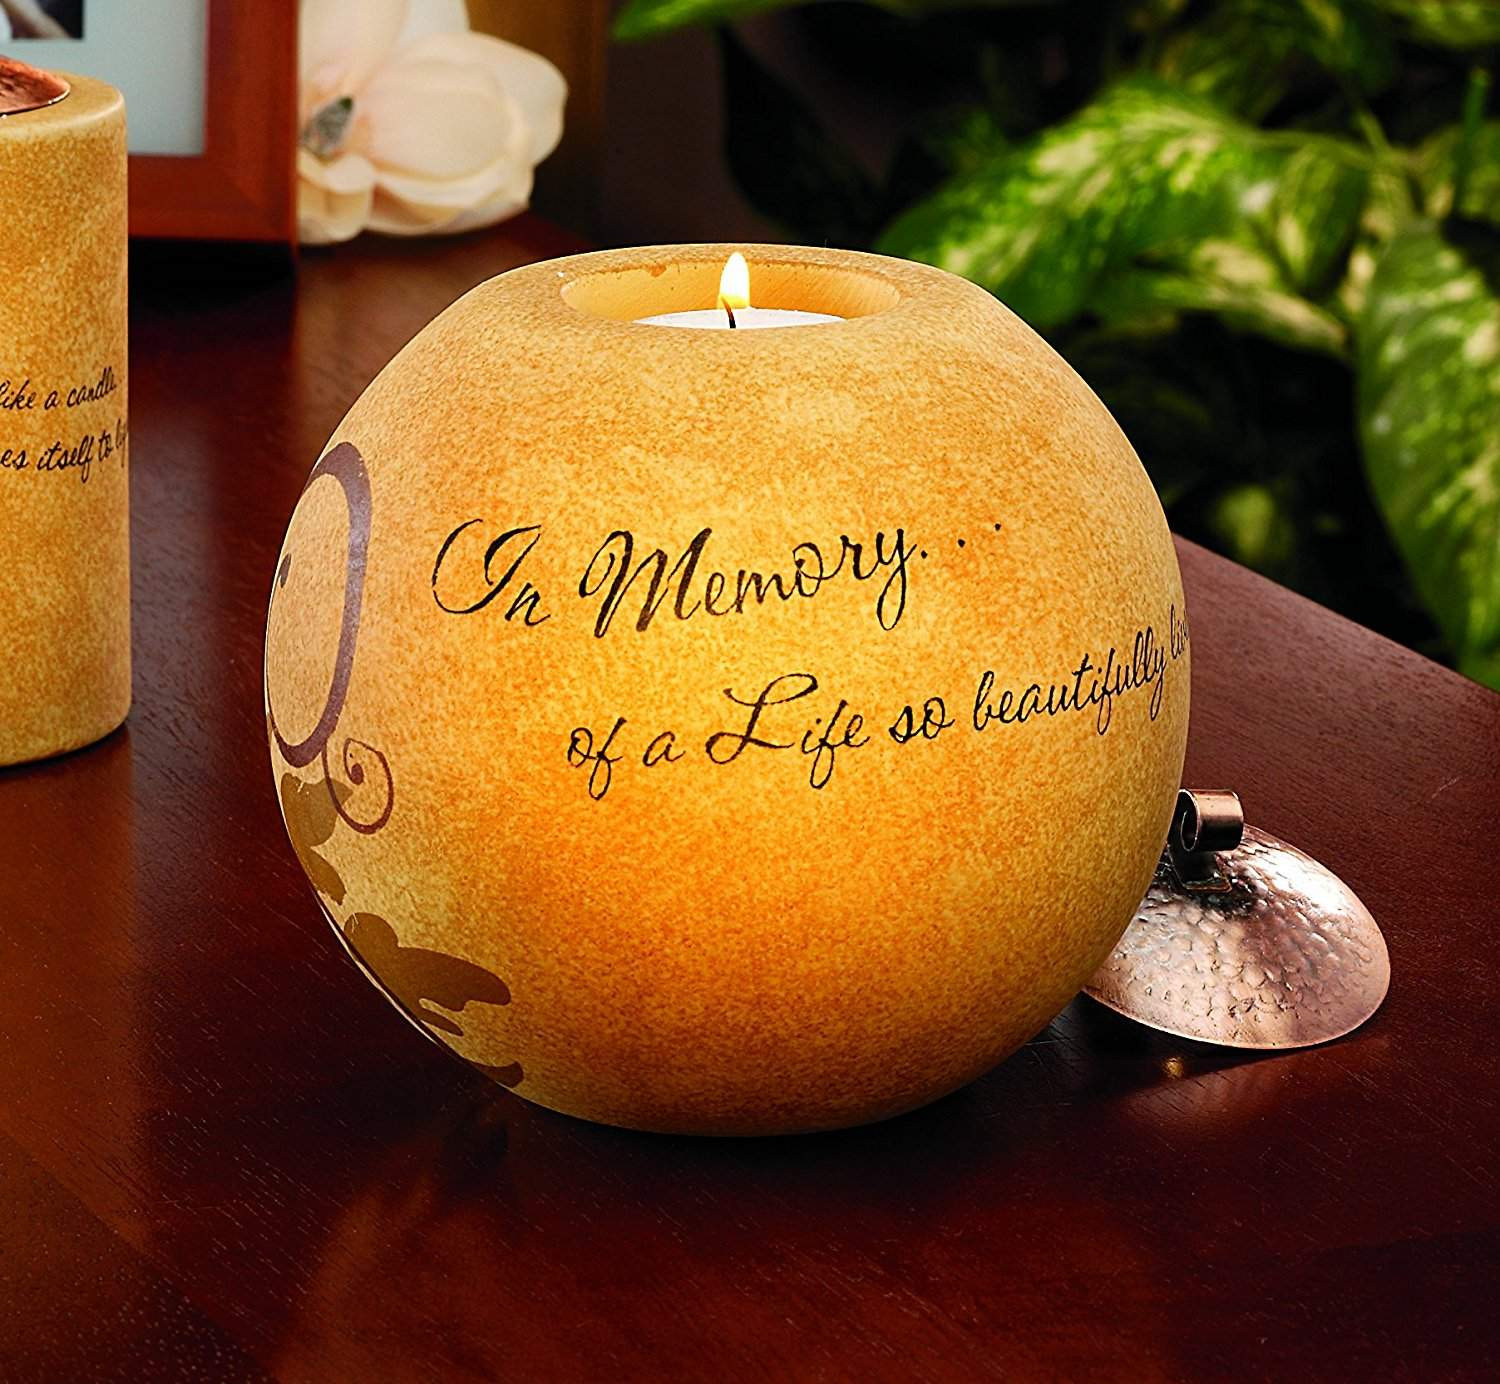 Best ideas about Remembrance Gift Ideas . Save or Pin Top 10 Best Sympathy Gift Ideas Now.